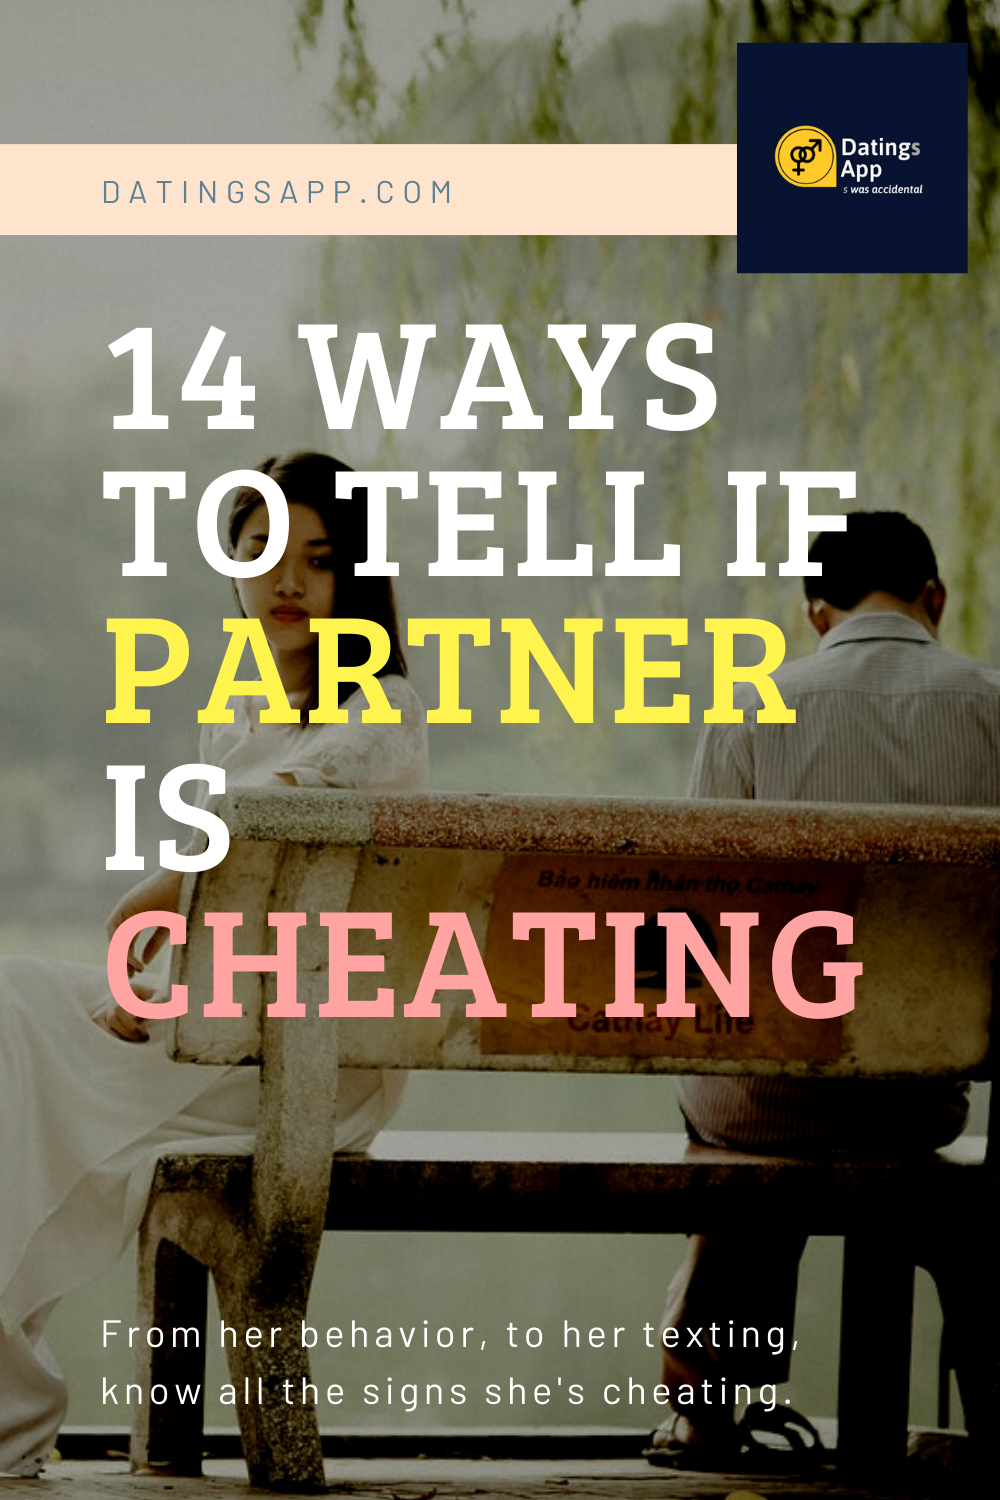 Cheating is signs she Is She